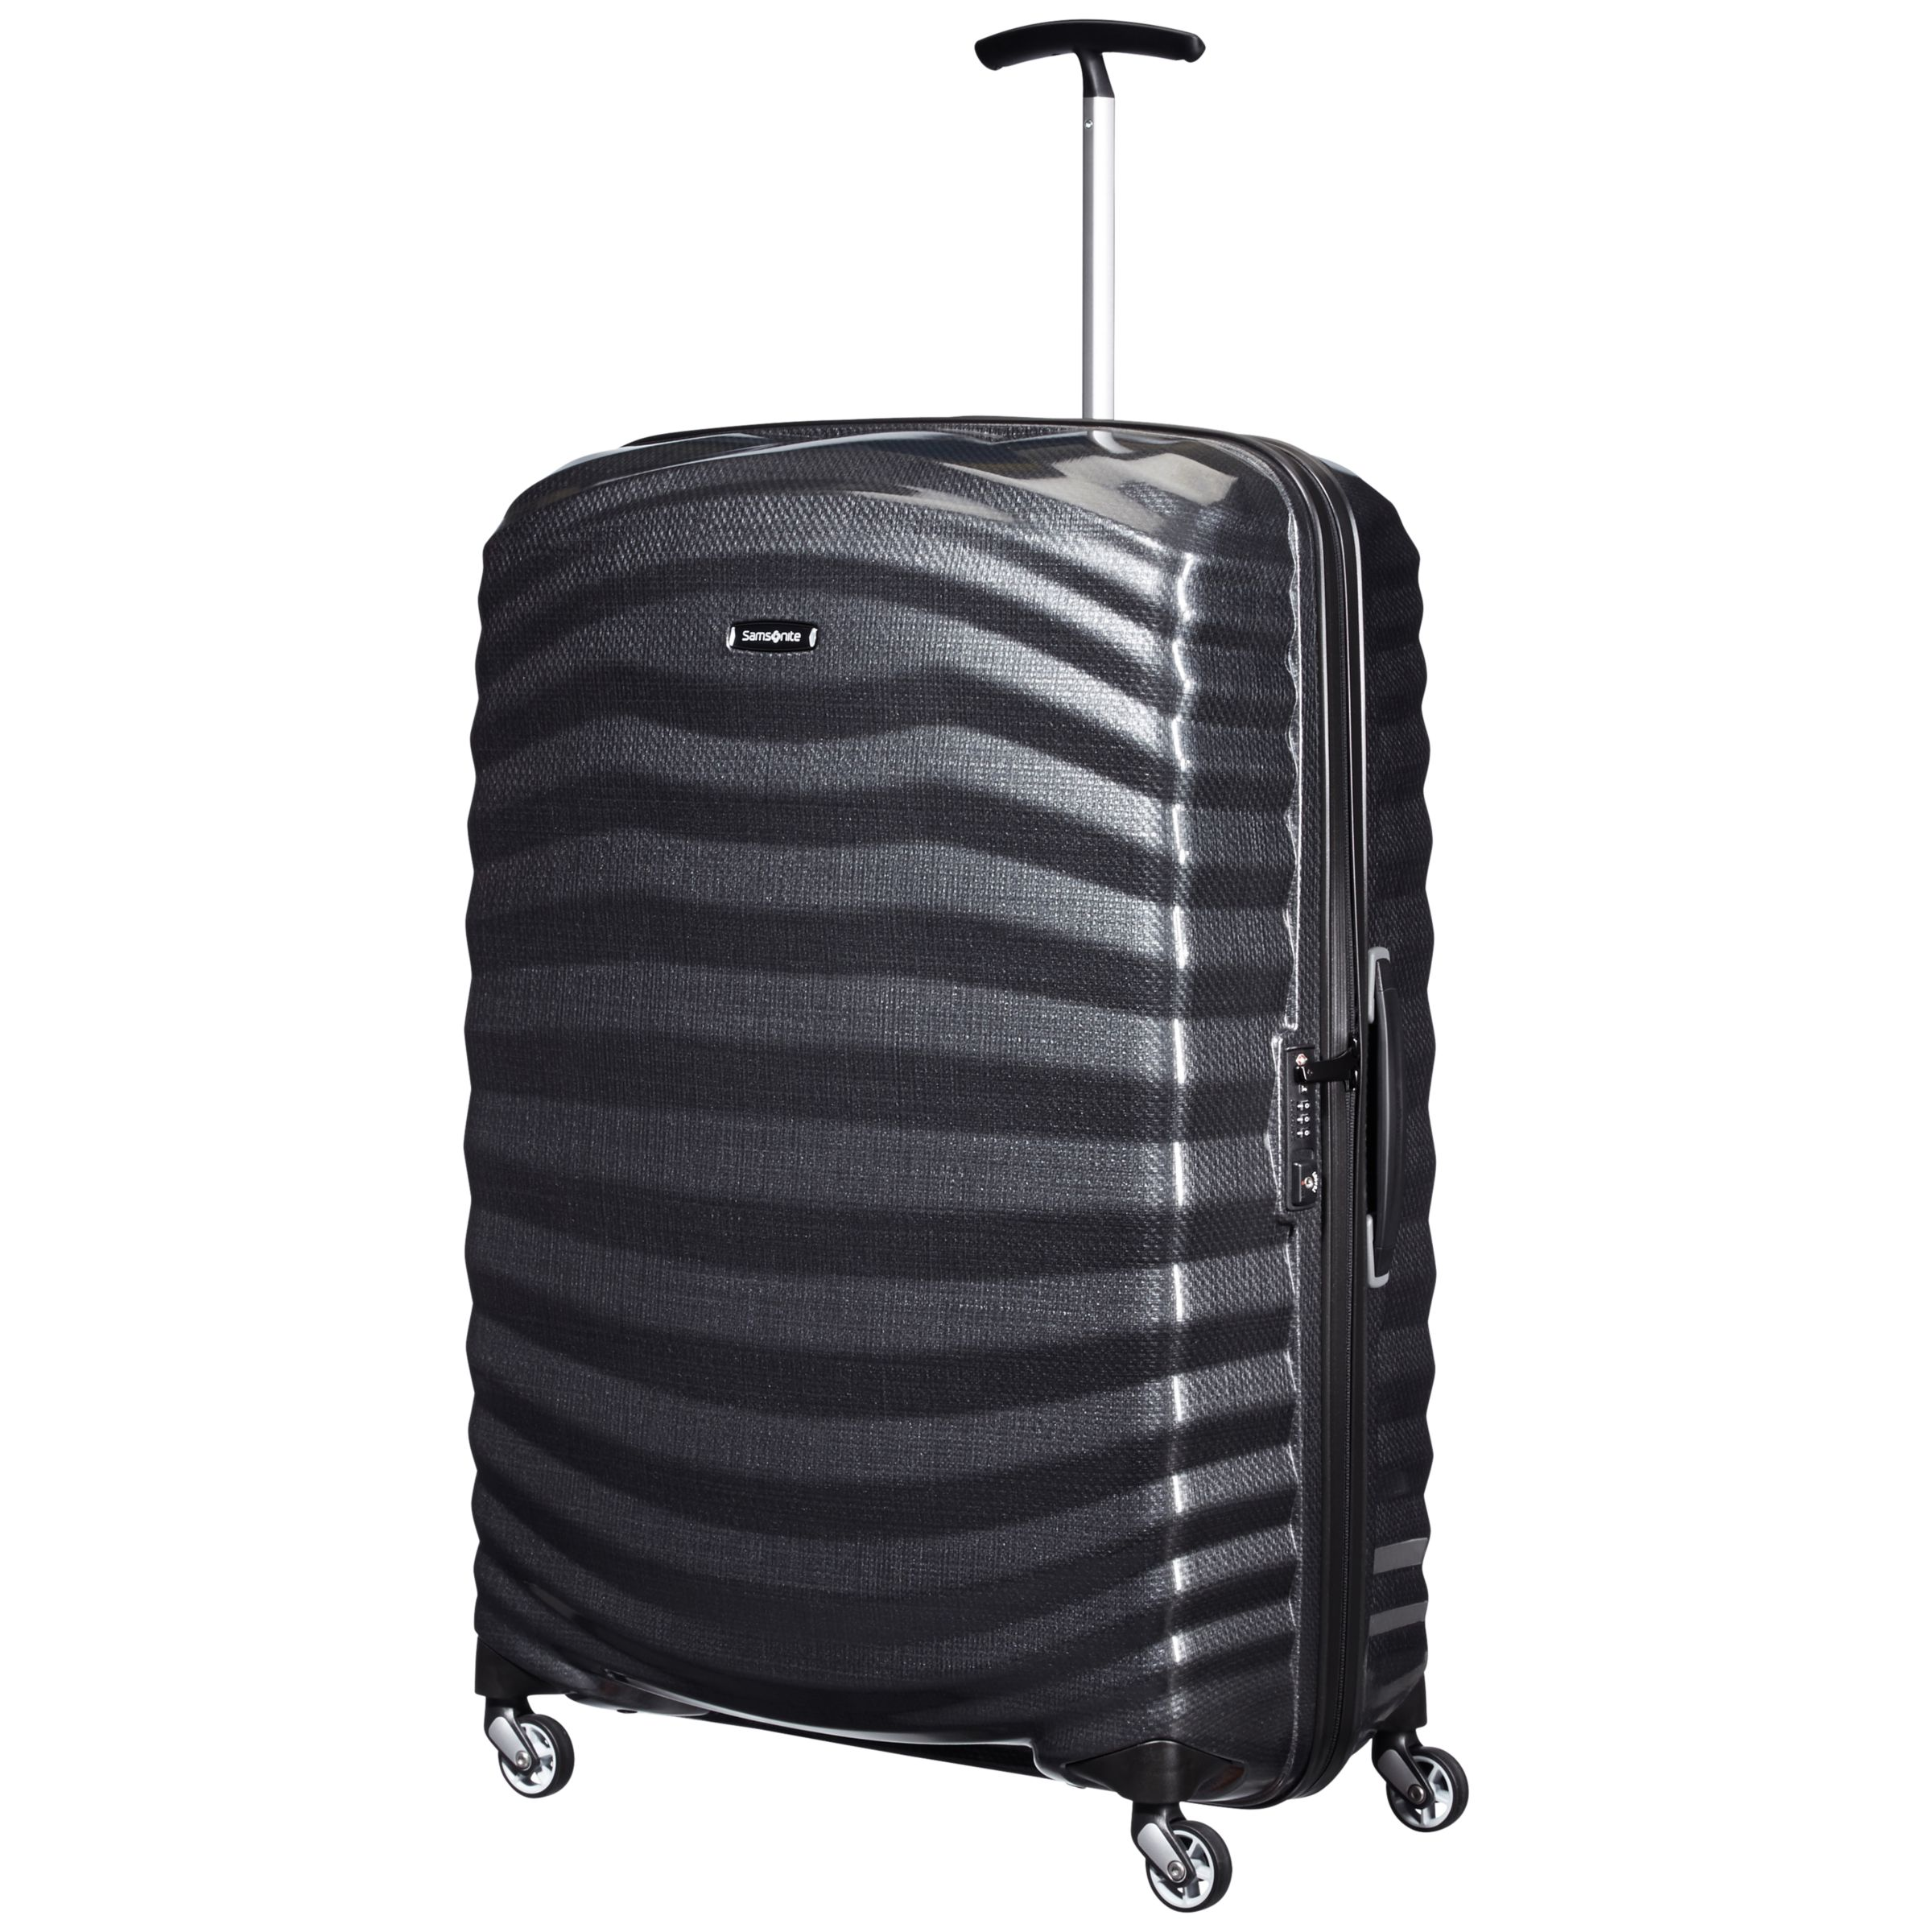 Samsonite Samsonite Lite-Shock Spinner 4-Wheel 82cm Suitcase